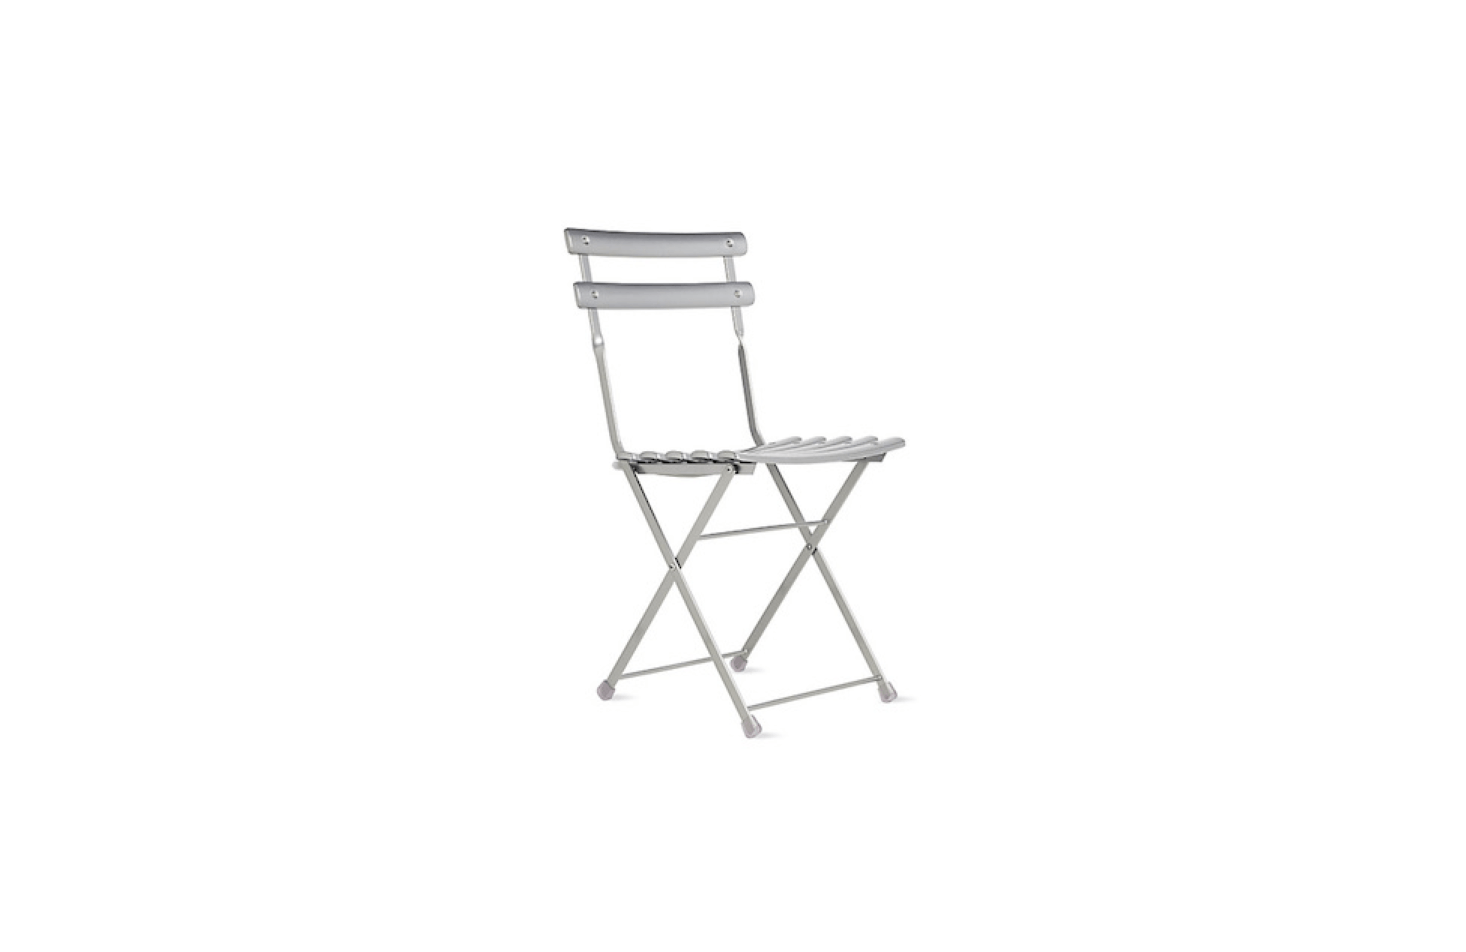 With a durable steel frame and weather-resistant powder-coated finish, the silver-colored Arc En Ciel Folding Chair weighs about  pounds and is $src=